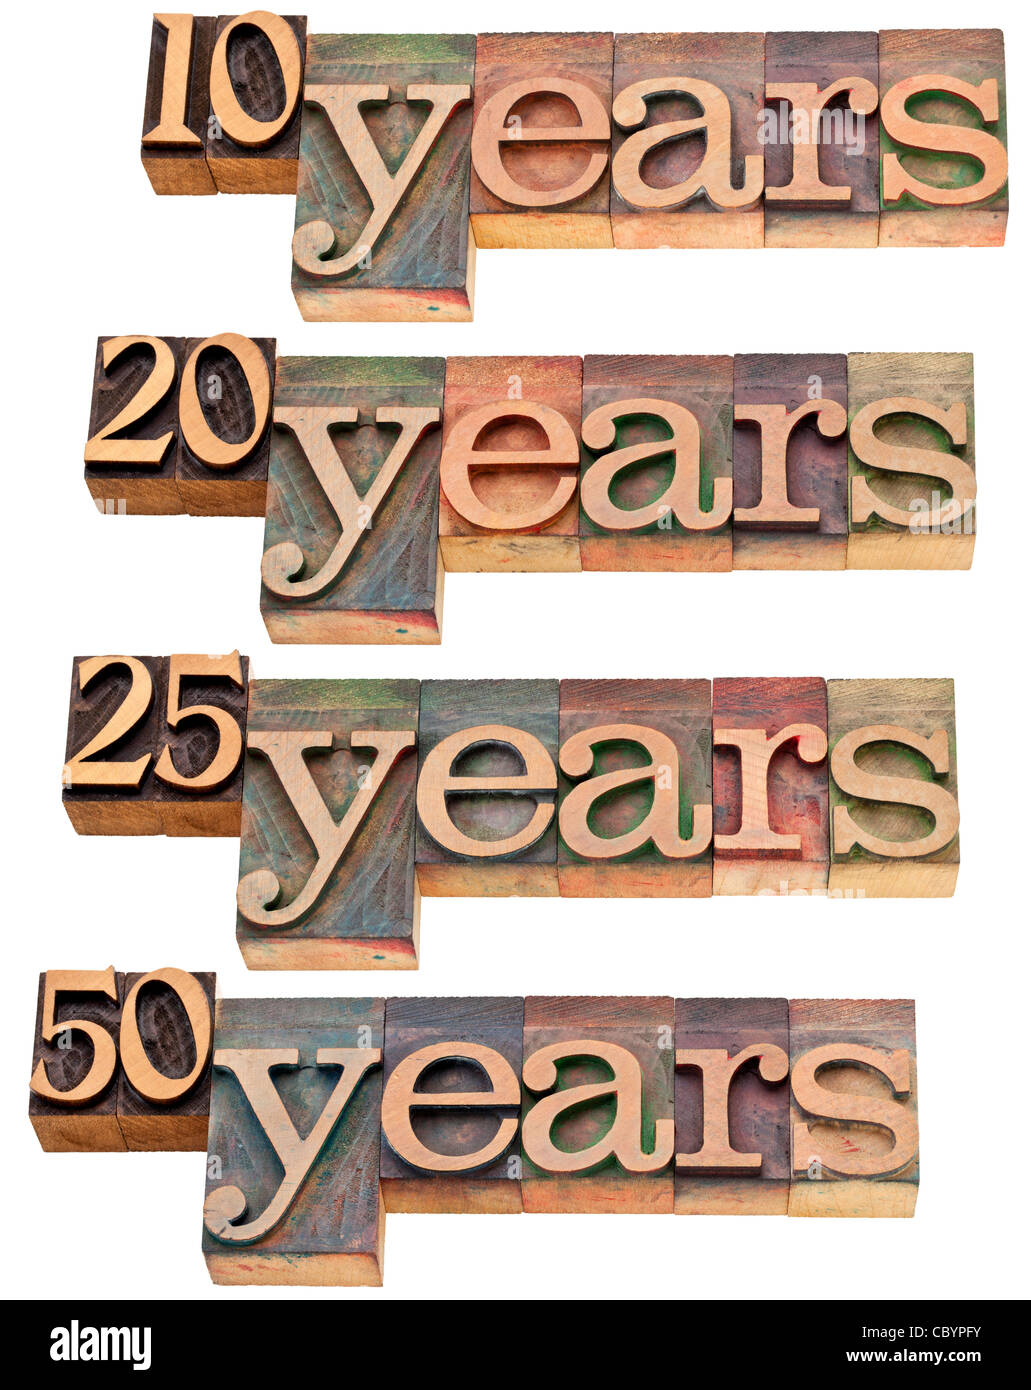 anniversary concept - 10, 20 ,25, 50 years - isolated text in vintage wood letterpress printing blocks stained by - Stock Image